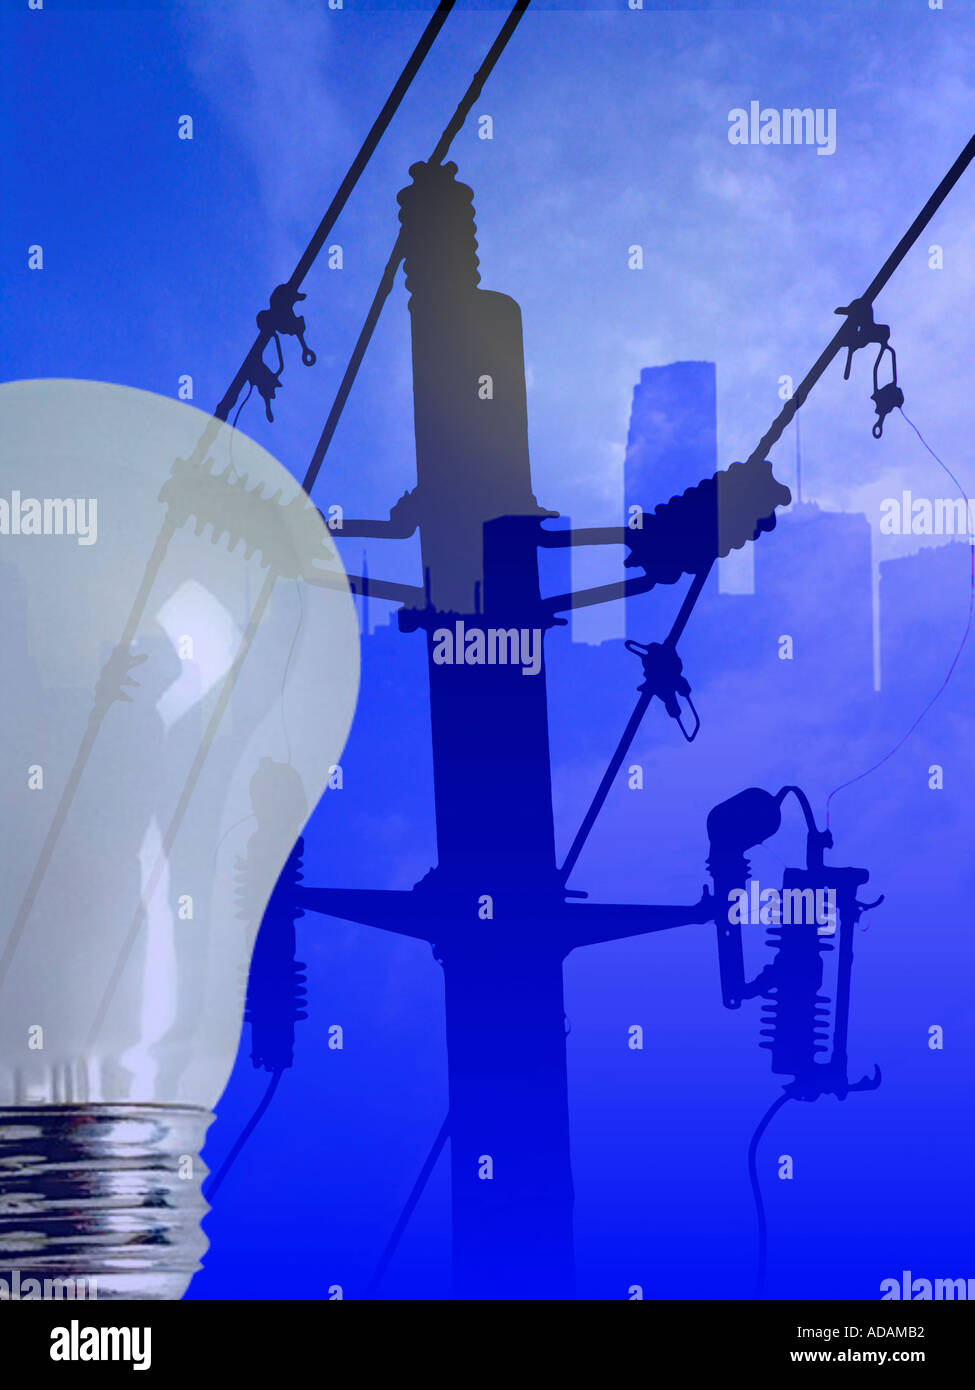 Electric Lines and Poles Energy Lightbulb City Skyline  - Stock Image